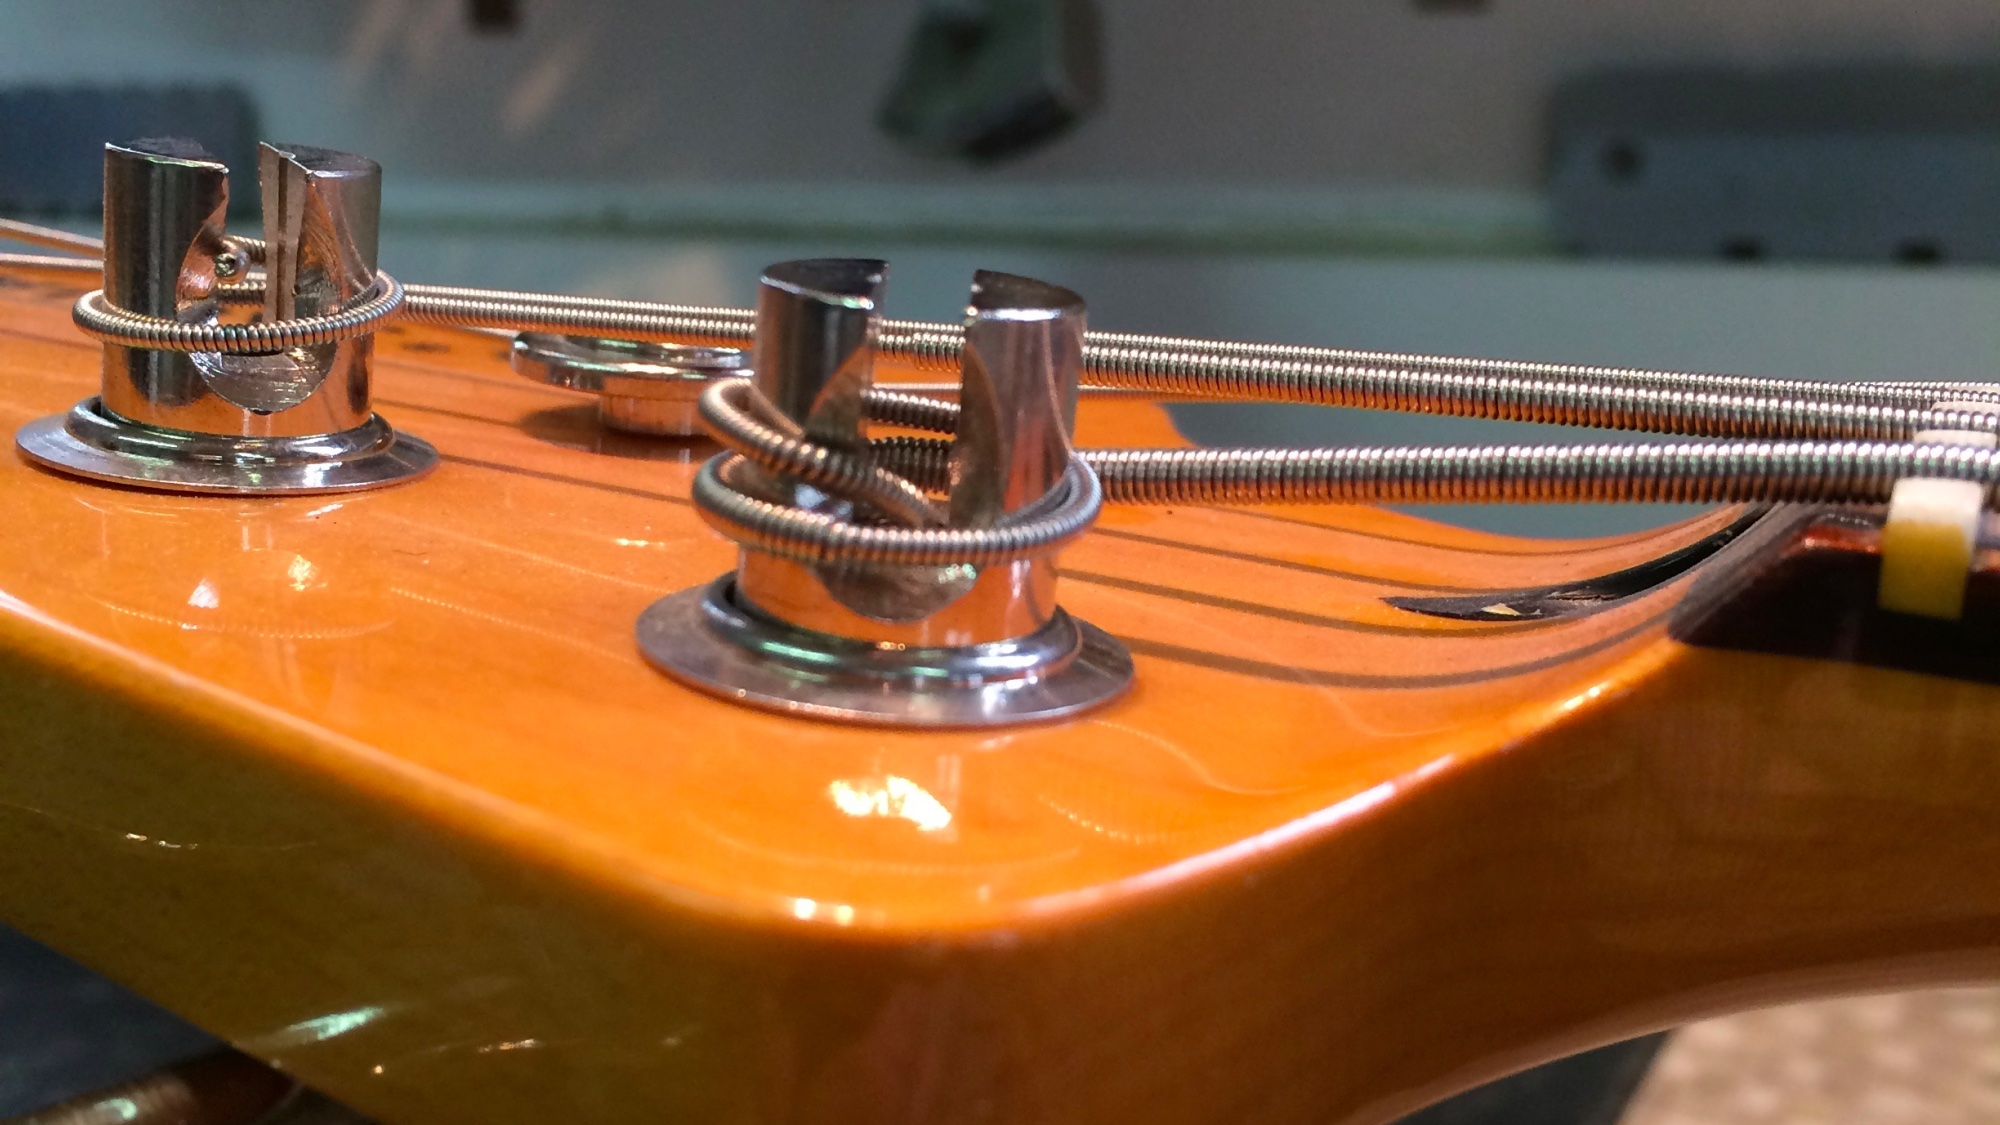 The string break angle on the second string is too shallow, causing buzzing when played open.